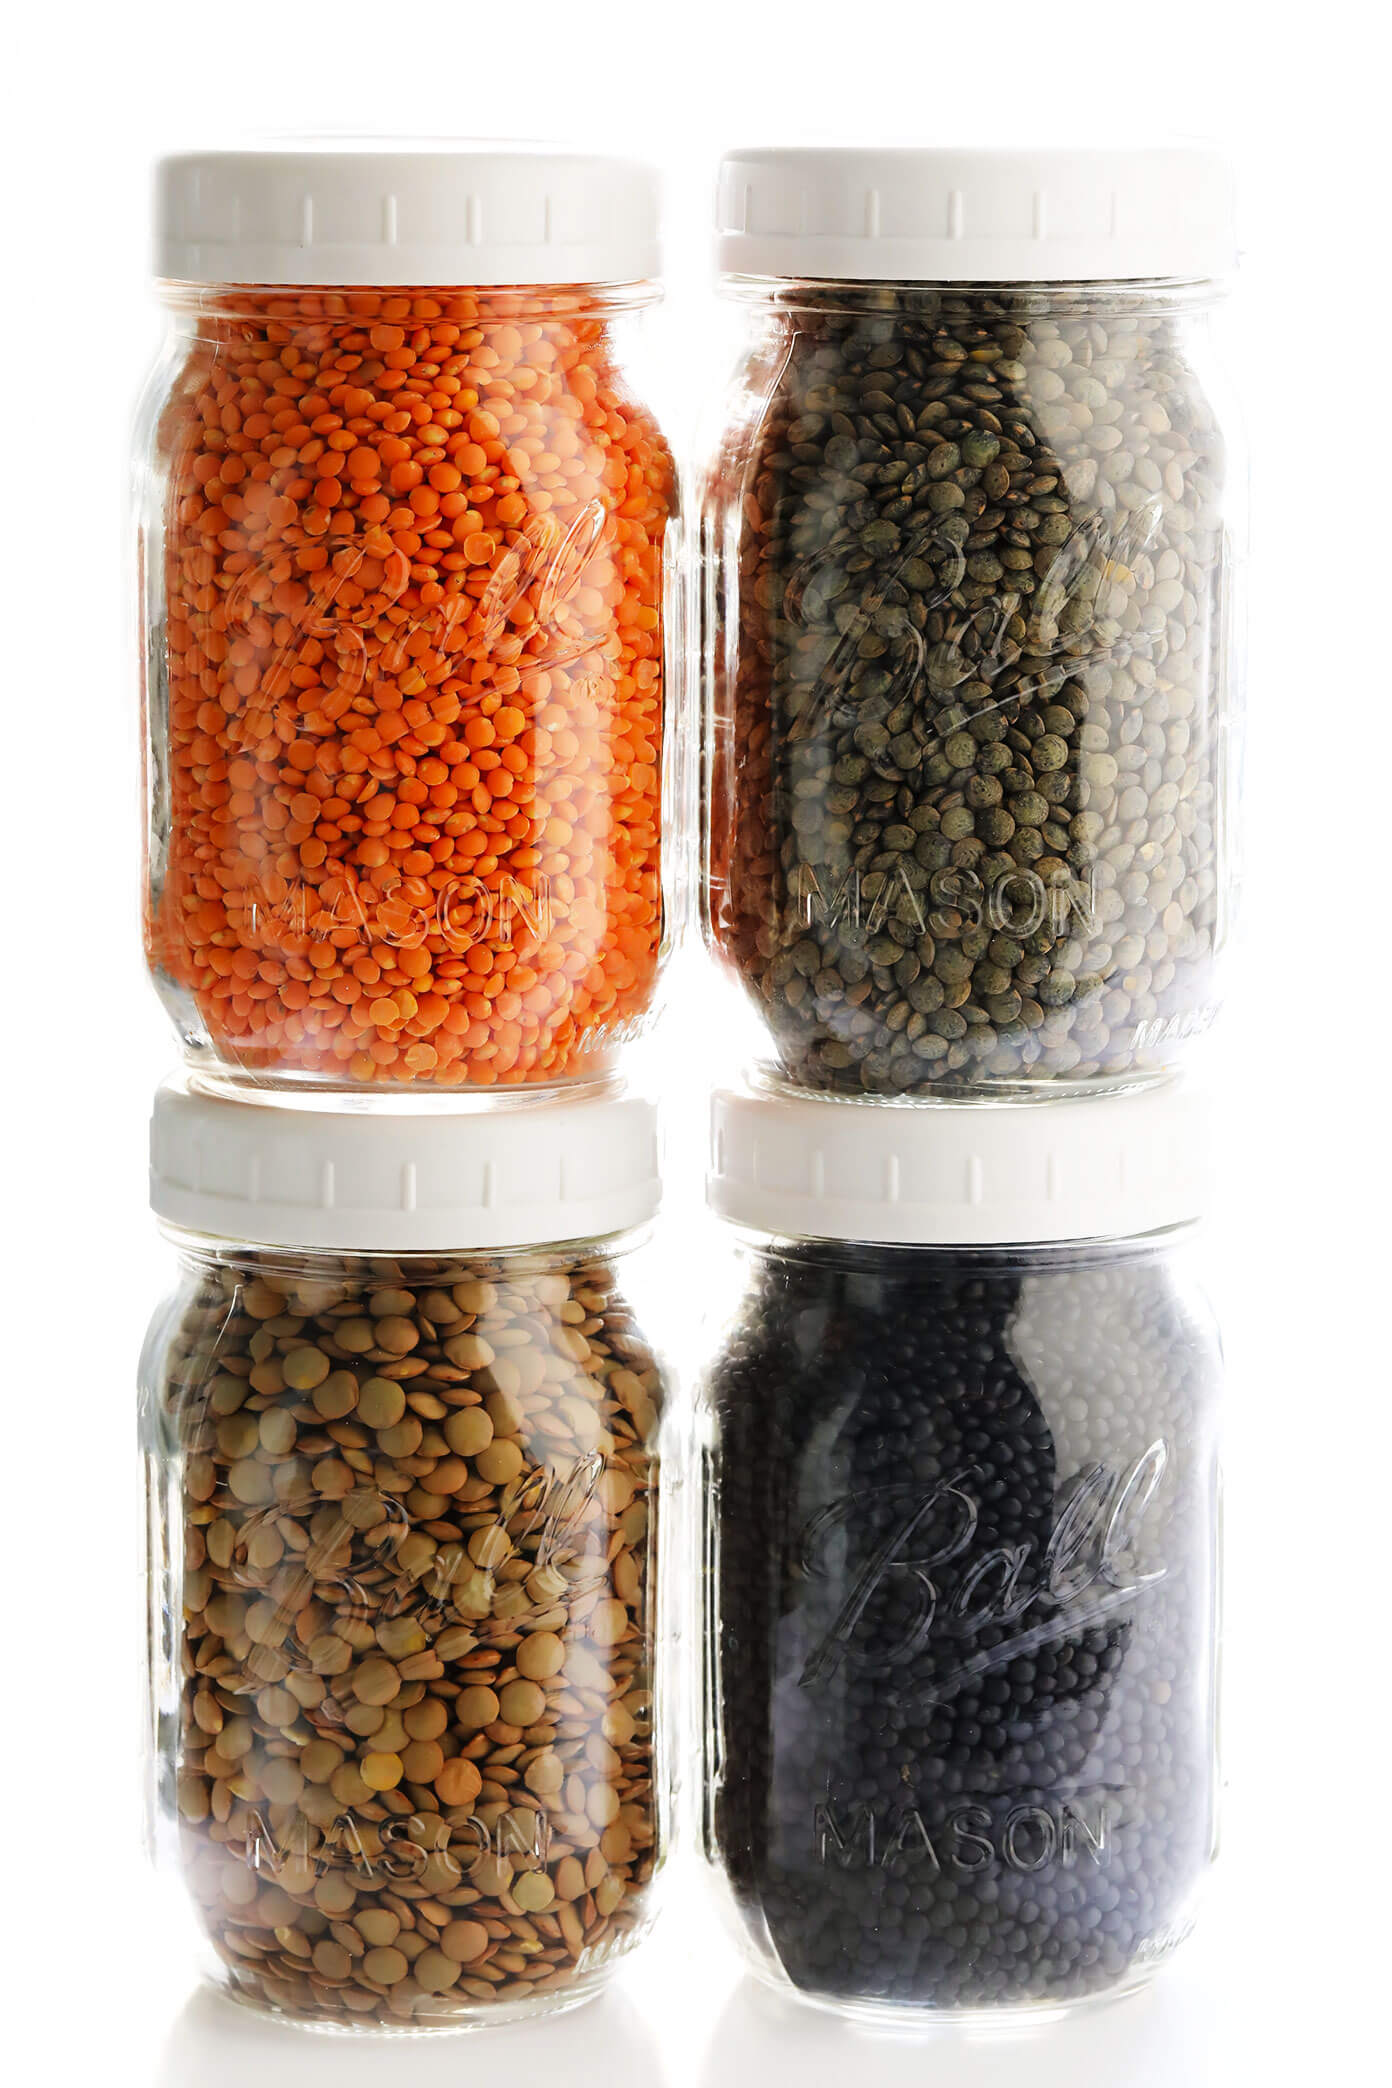 Different Types Of Lentils (Red Lentils, French Lentils, Brown Lentils, Black Lentils)